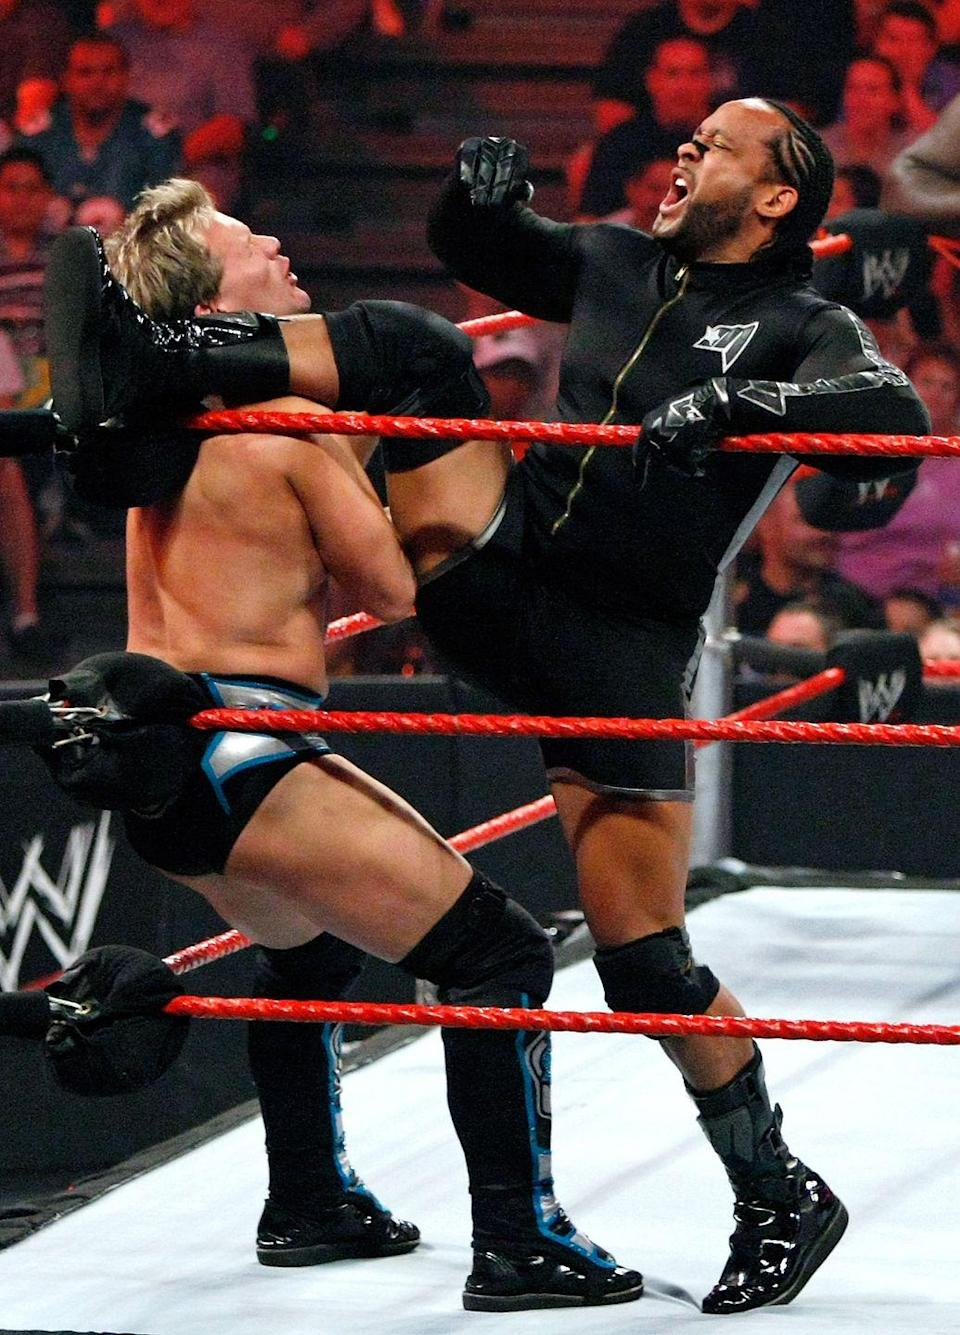 "<p>The <a href=""https://www.thesportster.com/wrestling/strange-rules-and-codes-wwe-wrestlers-have-to-follow/"" rel=""nofollow noopener"" target=""_blank"" data-ylk=""slk:WWE"" class=""link rapid-noclick-resp"">WWE</a> takes its reputation seriously, and if the company deems an appearance in proper for a star, they can prevent them from doing it. </p>"